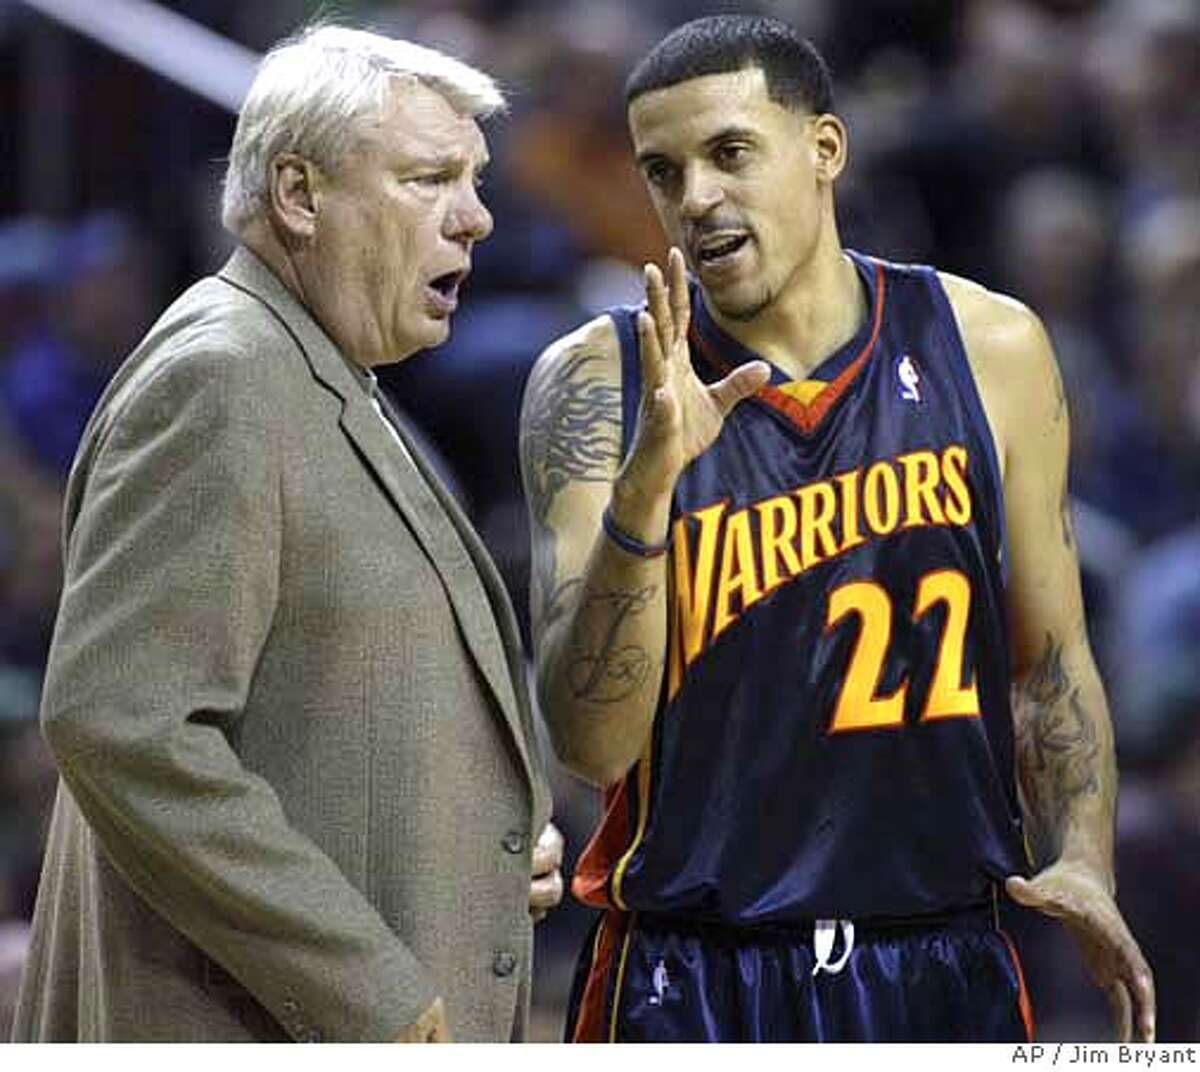 Golden State Warriors' head coach Don Nelson, left, and Matt Barnes talk in NBA basketball action in the fourth quarter against the Seattle SuperSonics Sunday, Dec. 10, 2006 in Seattle. The SuperSonics beat the Warriors 117-115. (AP Photo/Jim Bryant)